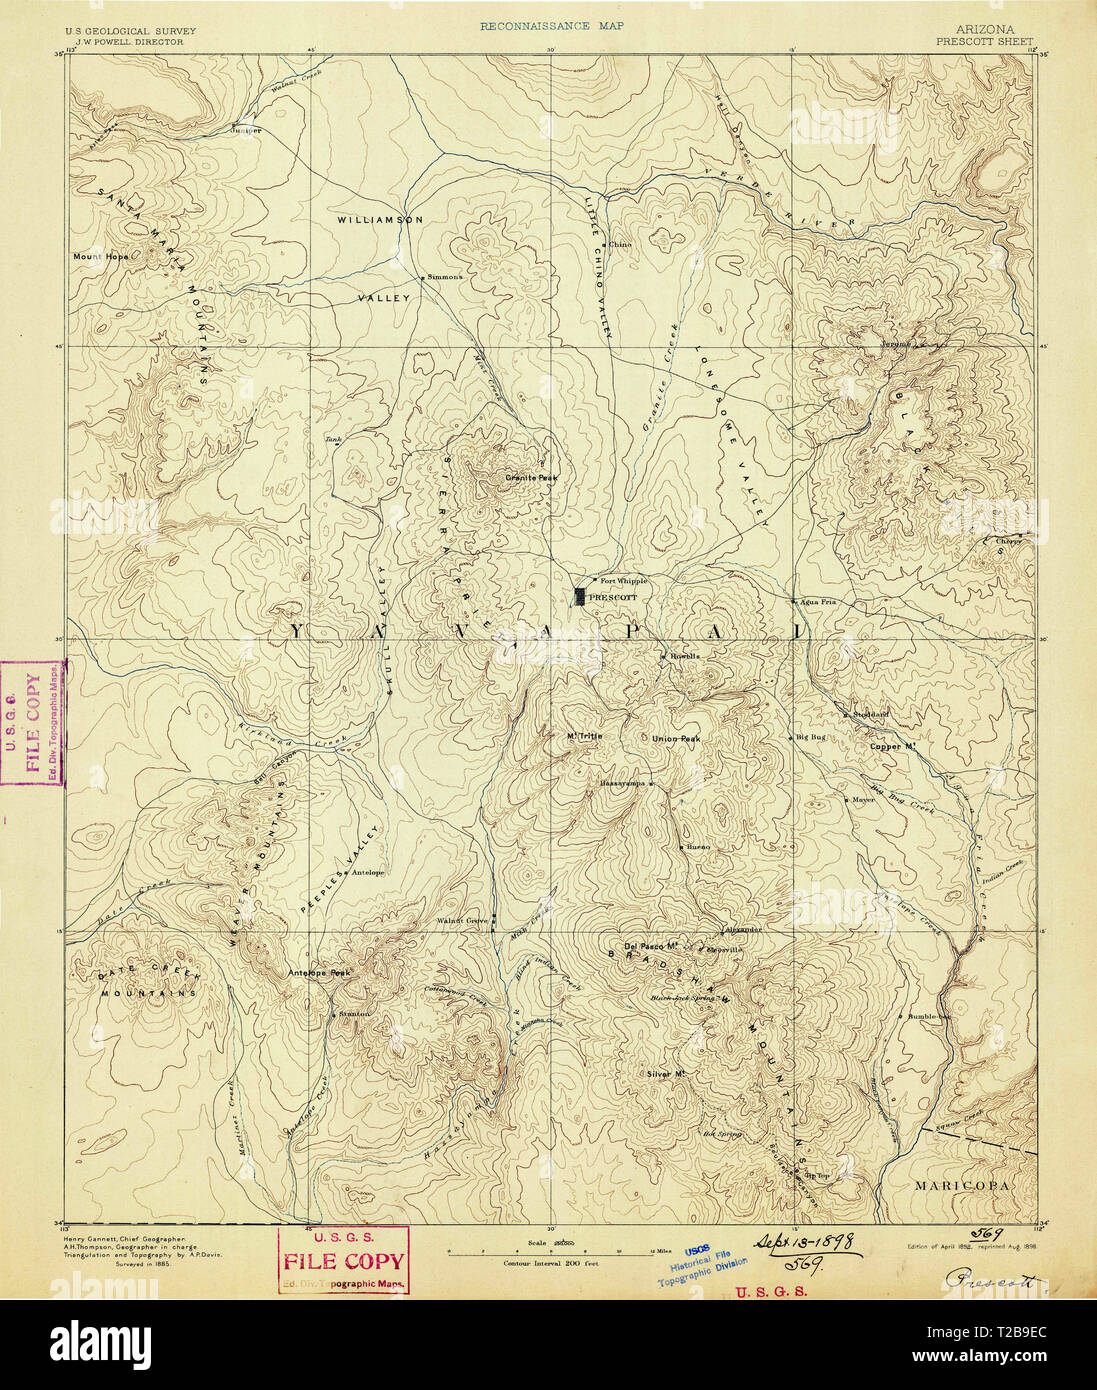 Map Of Arizona Prescott.Usgs Topo Map Arizona Az Prescott 315581 1892 250000 Restoration